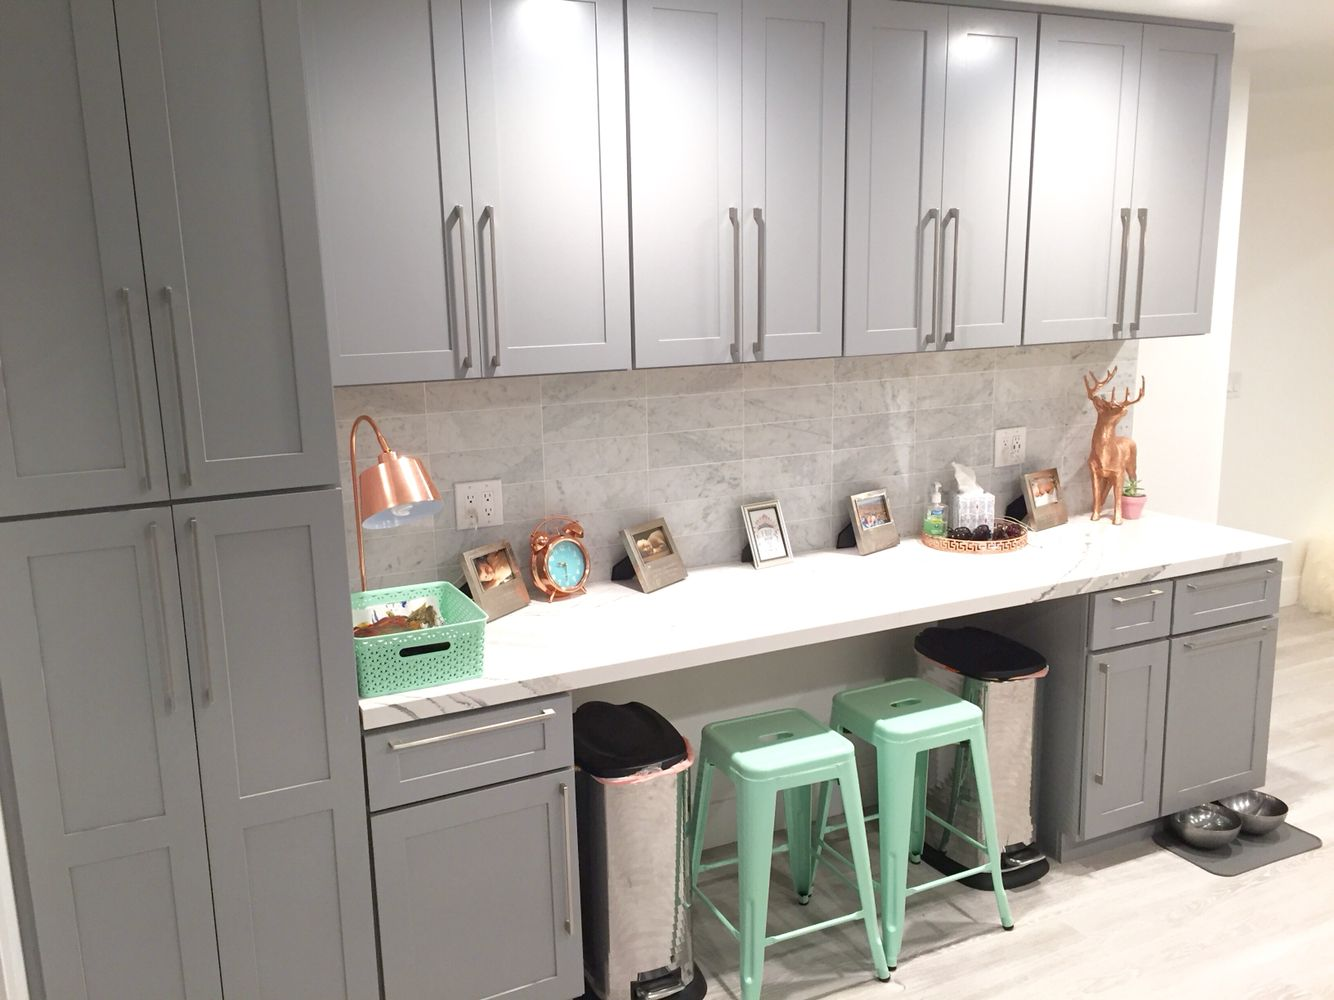 Homeschool work station copper and mint gray cabinets straight straight lay carrara marble subway tile back splash doublecrazyfo Image collections